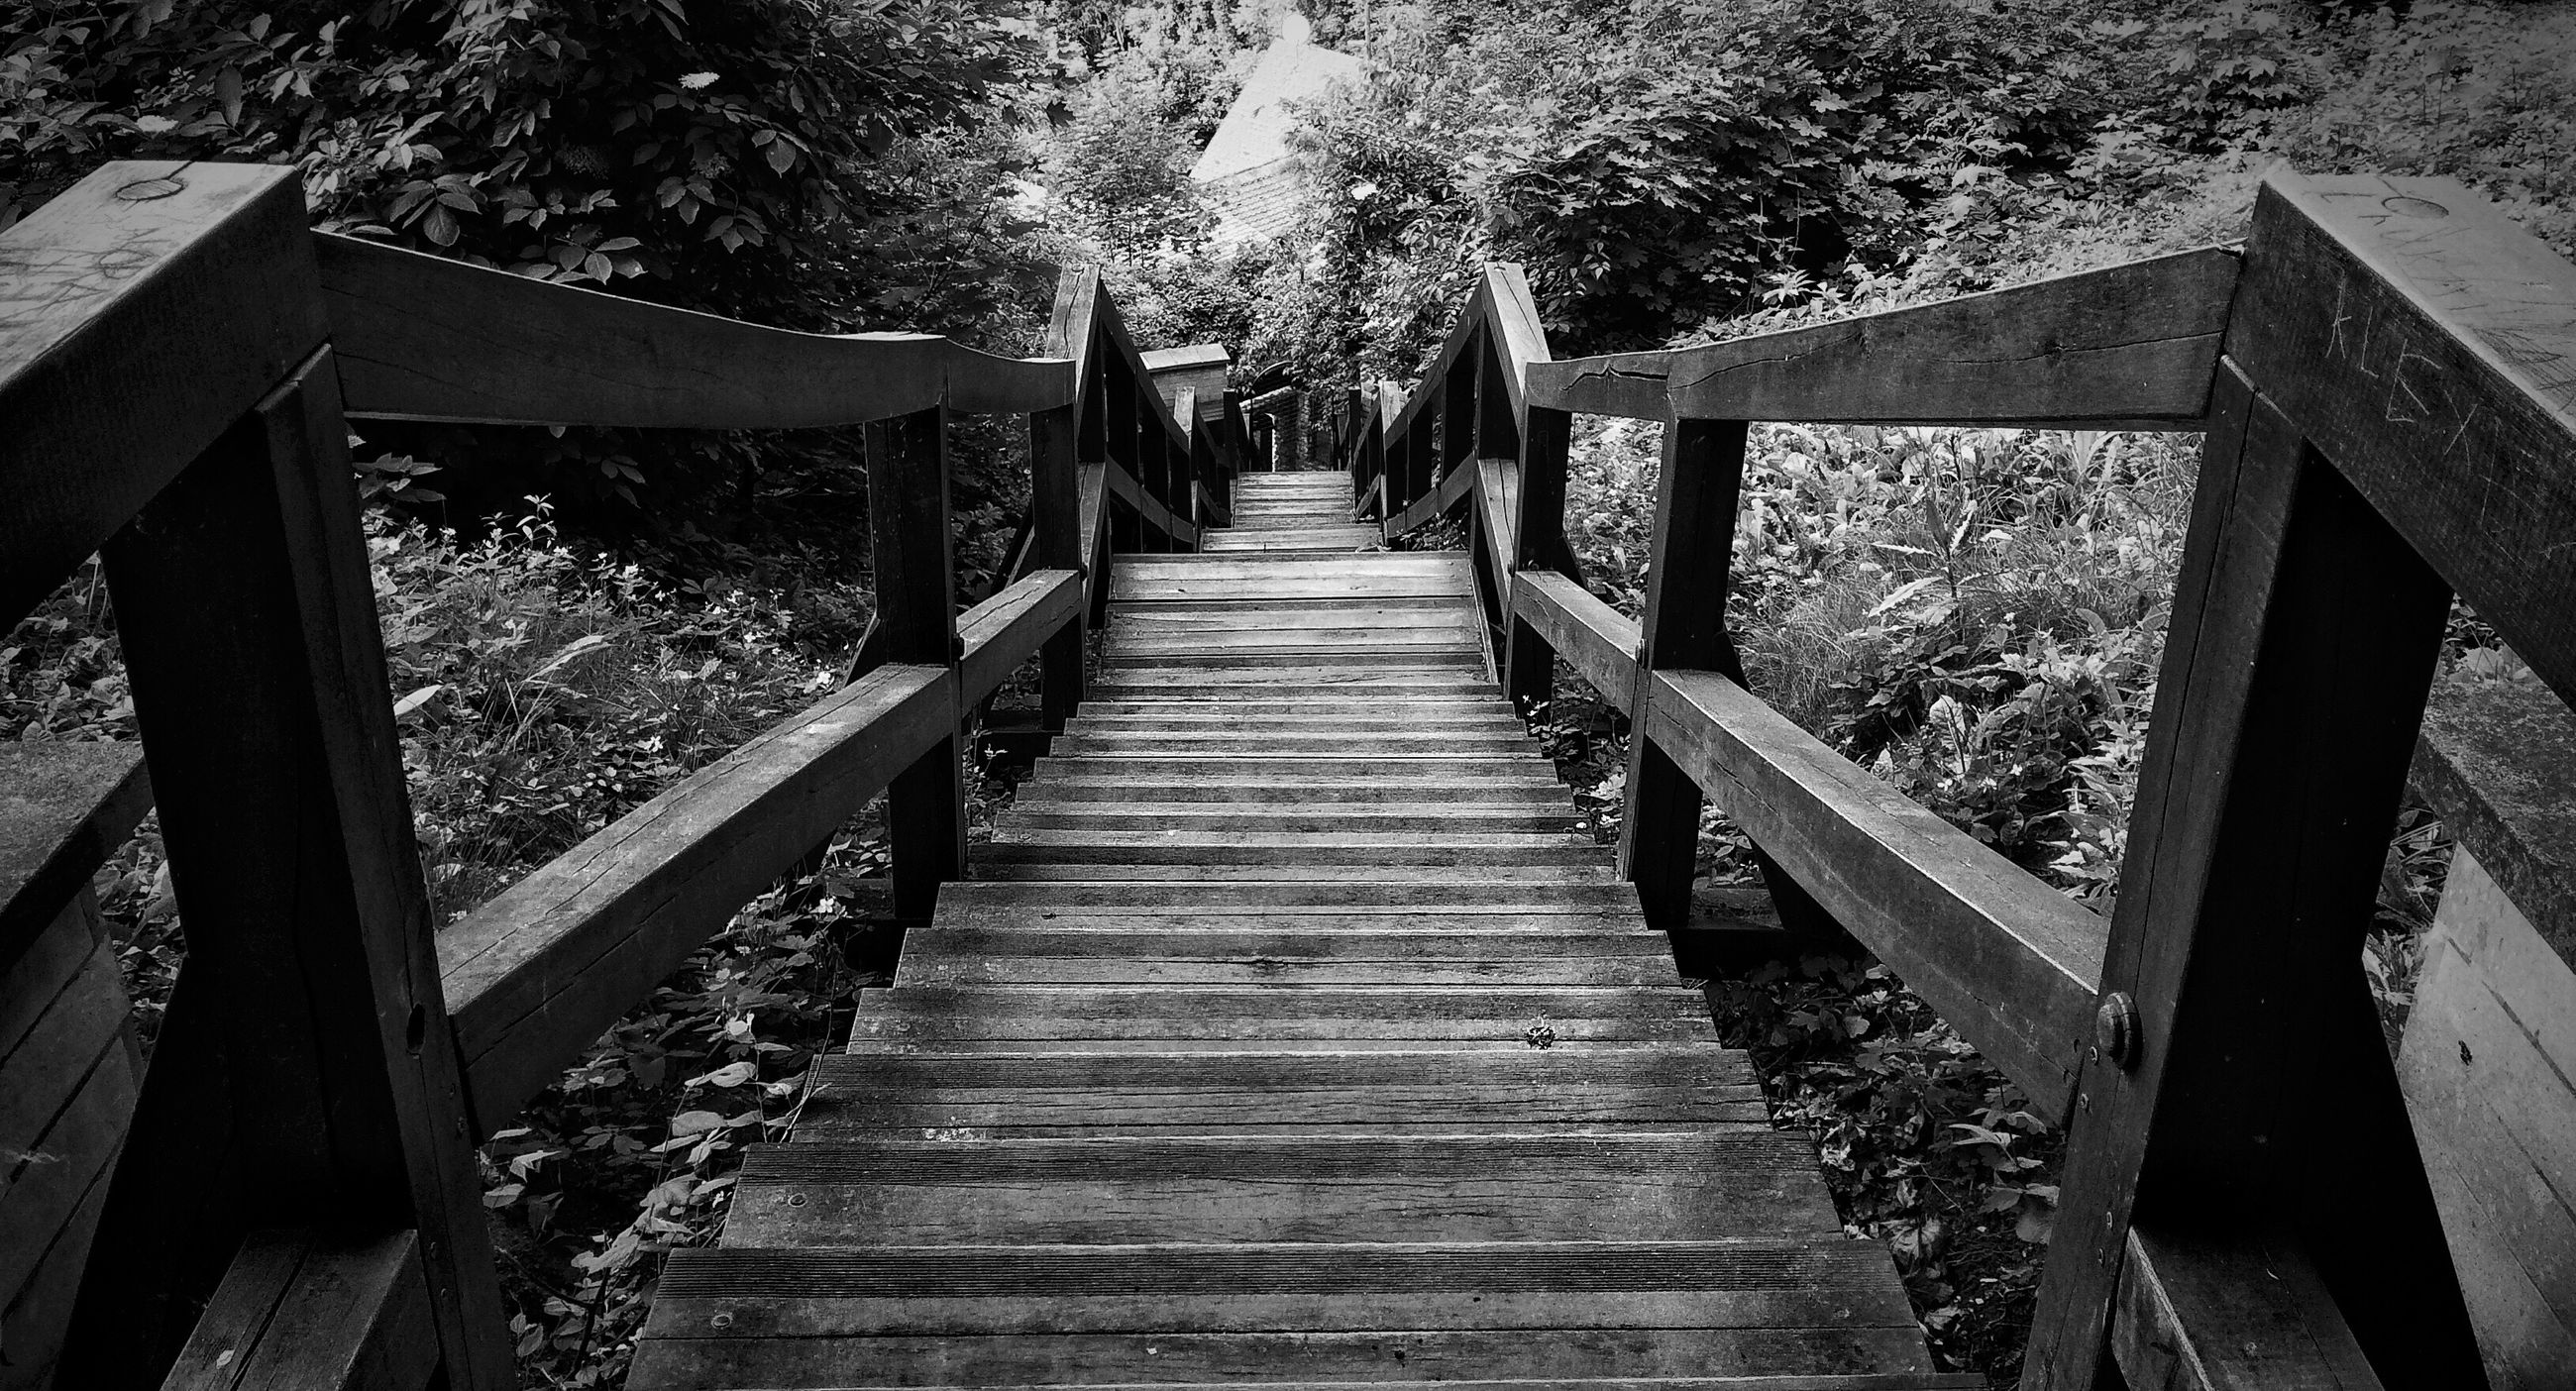 the way forward, railing, tree, steps, wood - material, built structure, steps and staircases, footbridge, staircase, architecture, diminishing perspective, nature, walkway, growth, boardwalk, wooden, tranquility, day, outdoors, sunlight